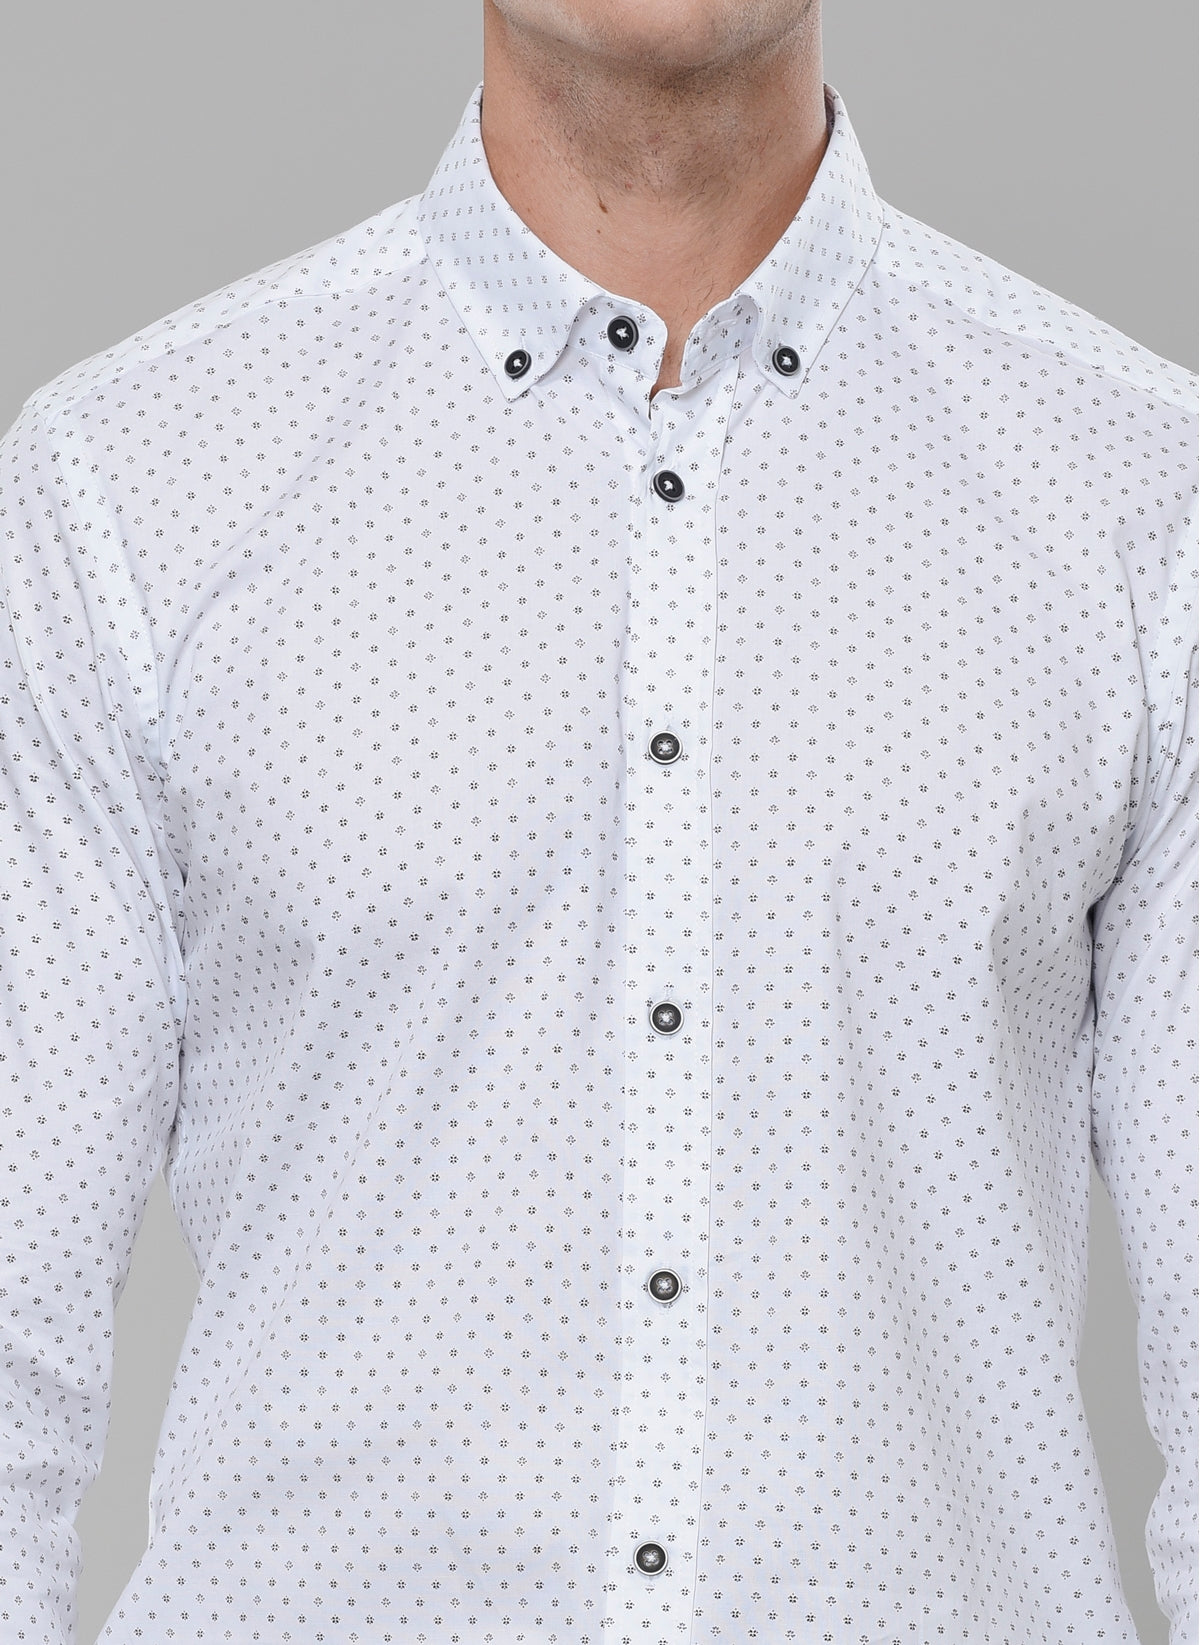 Printed Stretch Shirt in White